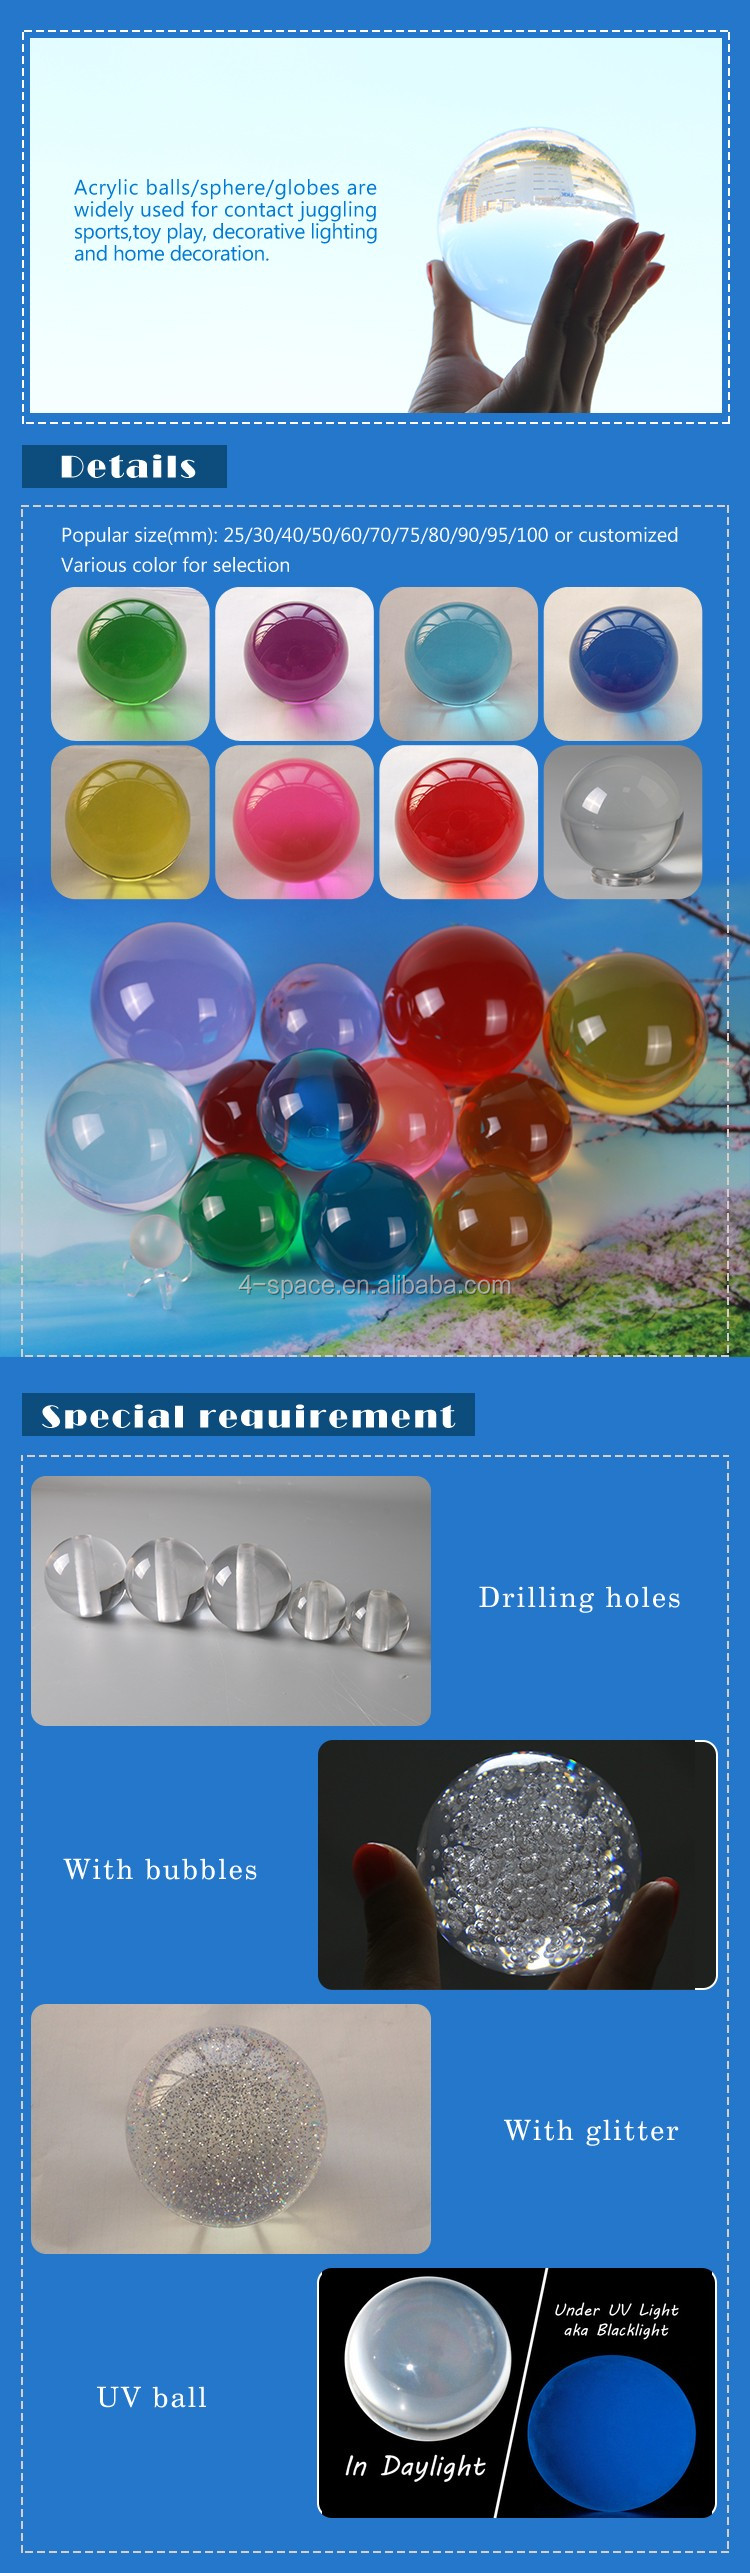 customized 90mm Ultra Clear Acrylic Ball, Acrylic Ball Crystal Clear Acrylic Contact Balls for contact juggling sports